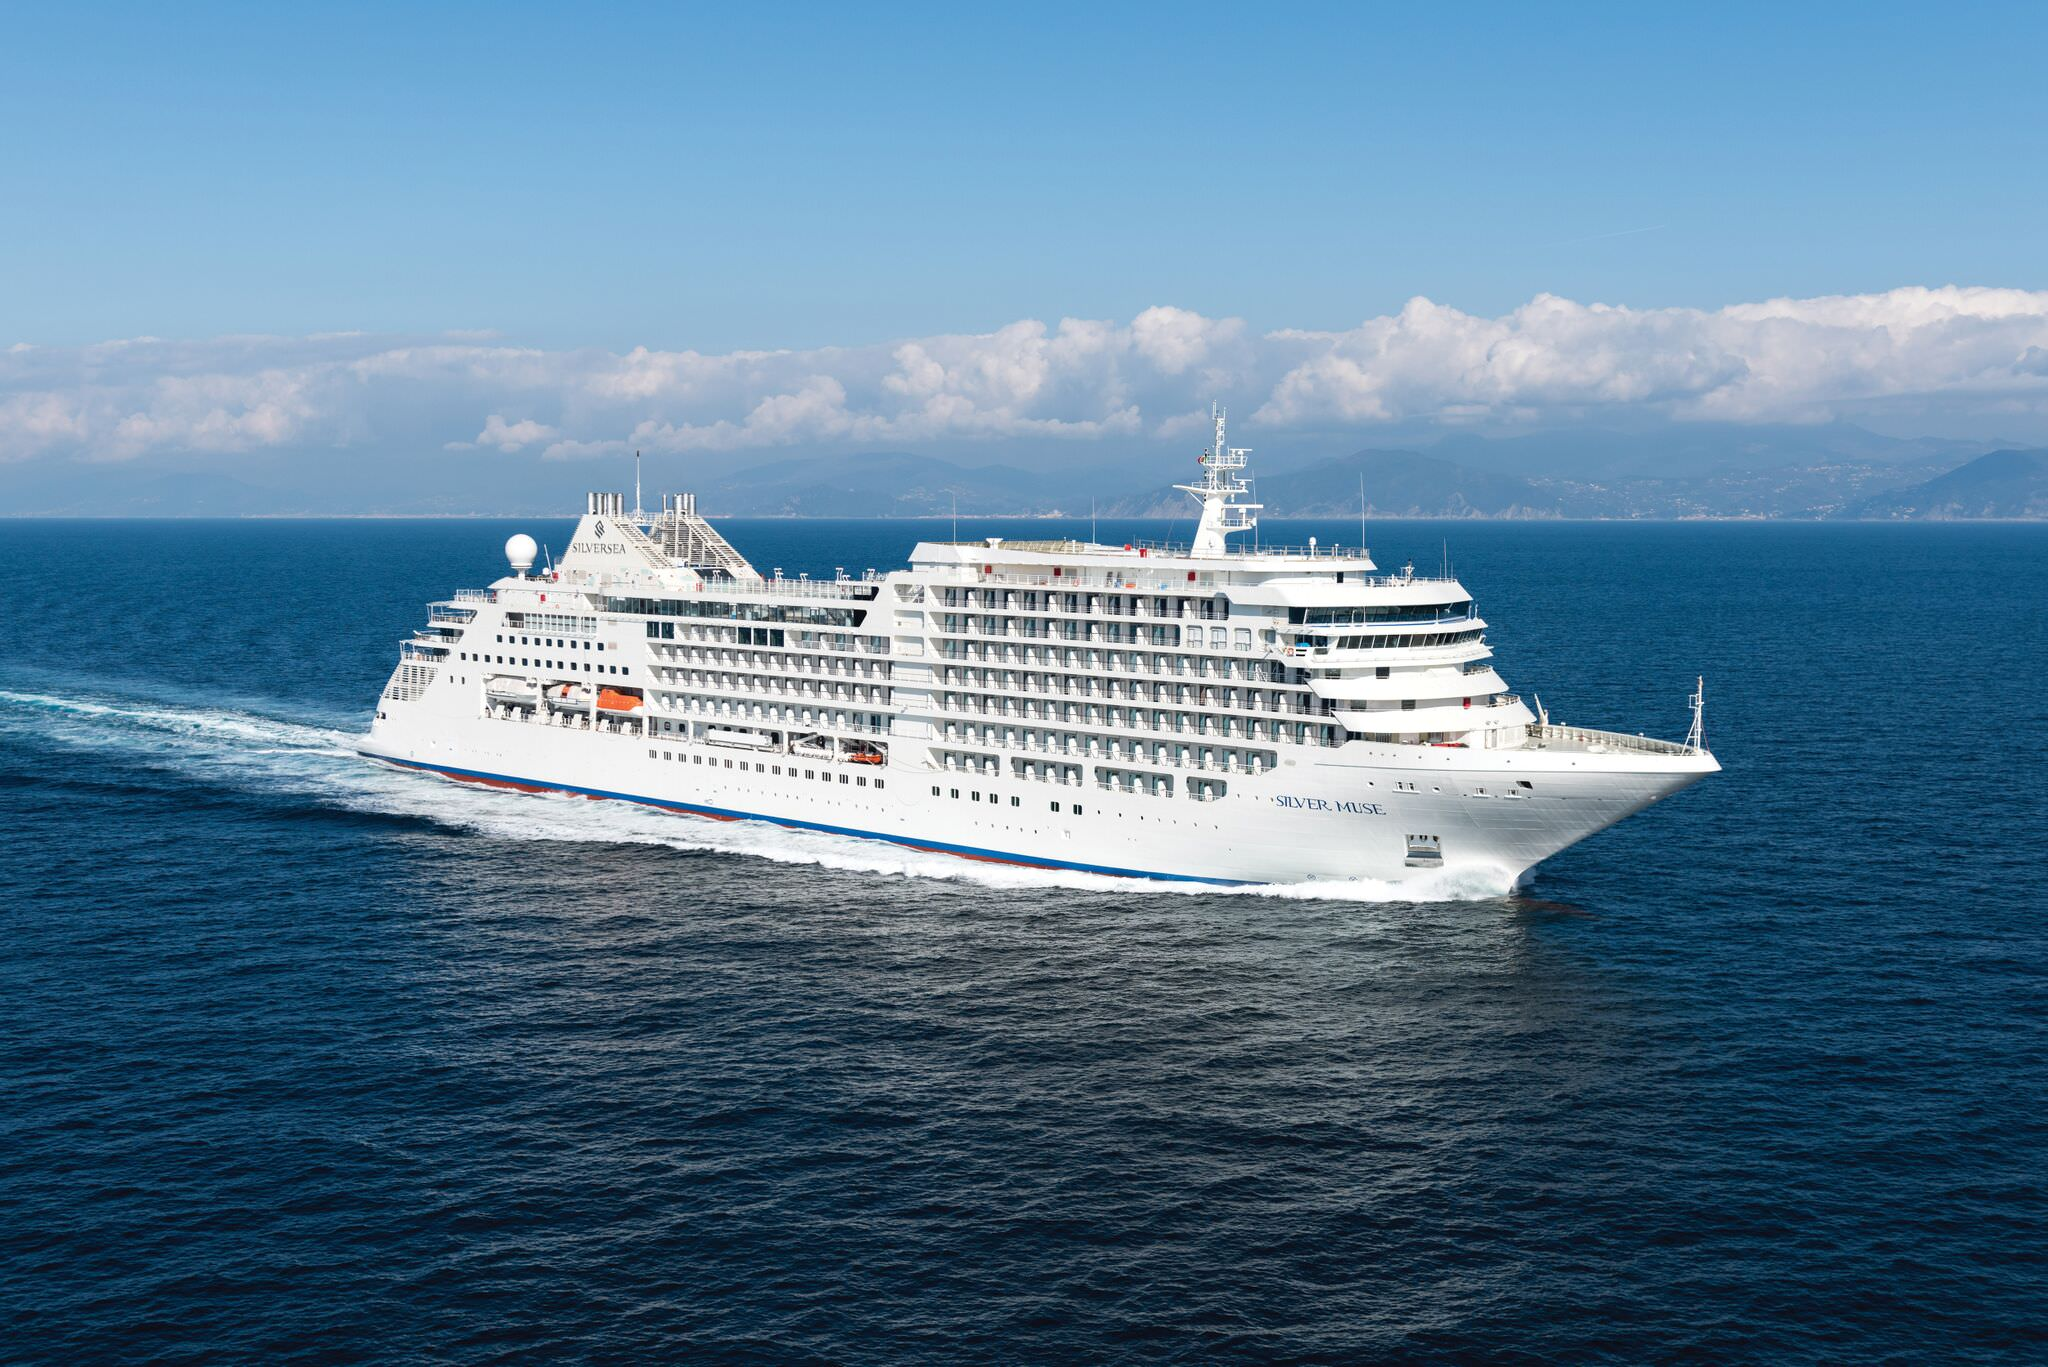 Silversea Announces Summer 2020 and Winter 2021 Itineraries